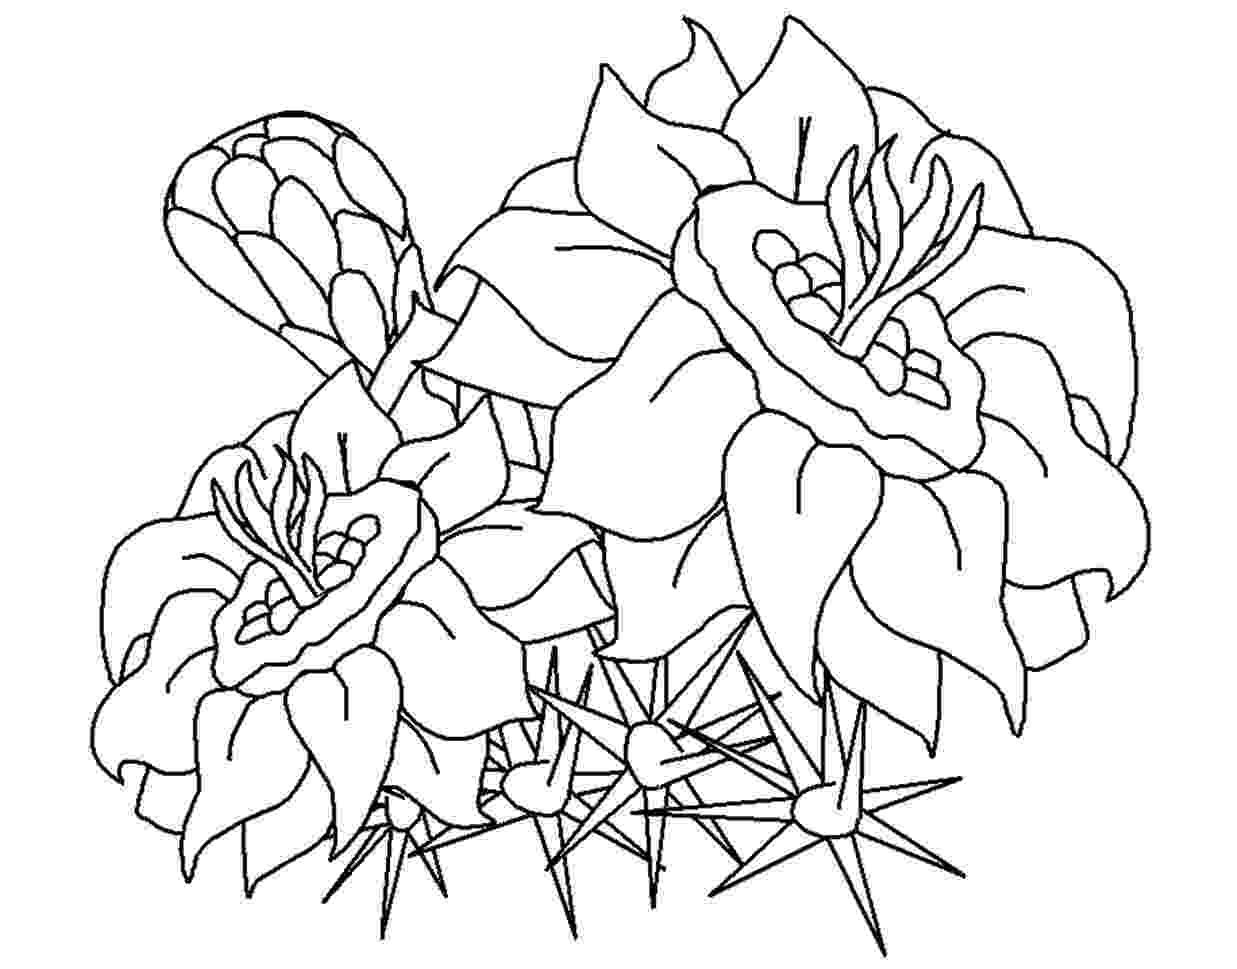 flower coloring sheets for kids free printable flower coloring pages for kids best for sheets flower coloring kids